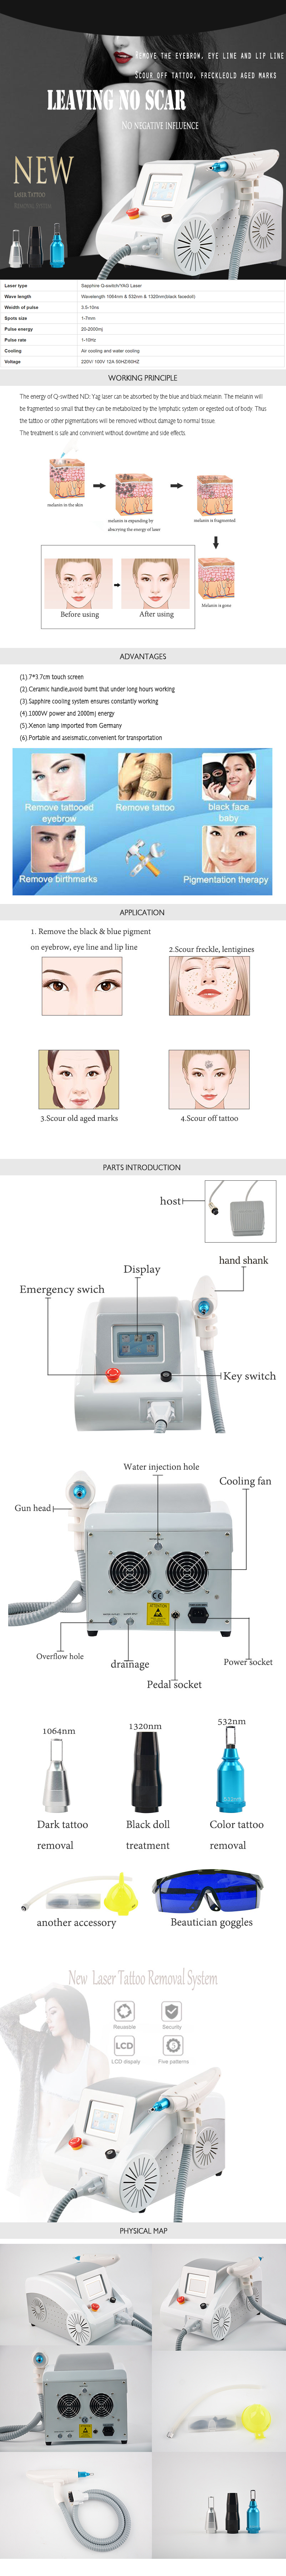 YG01 Yag Laser Tattoo Removal Machine product details